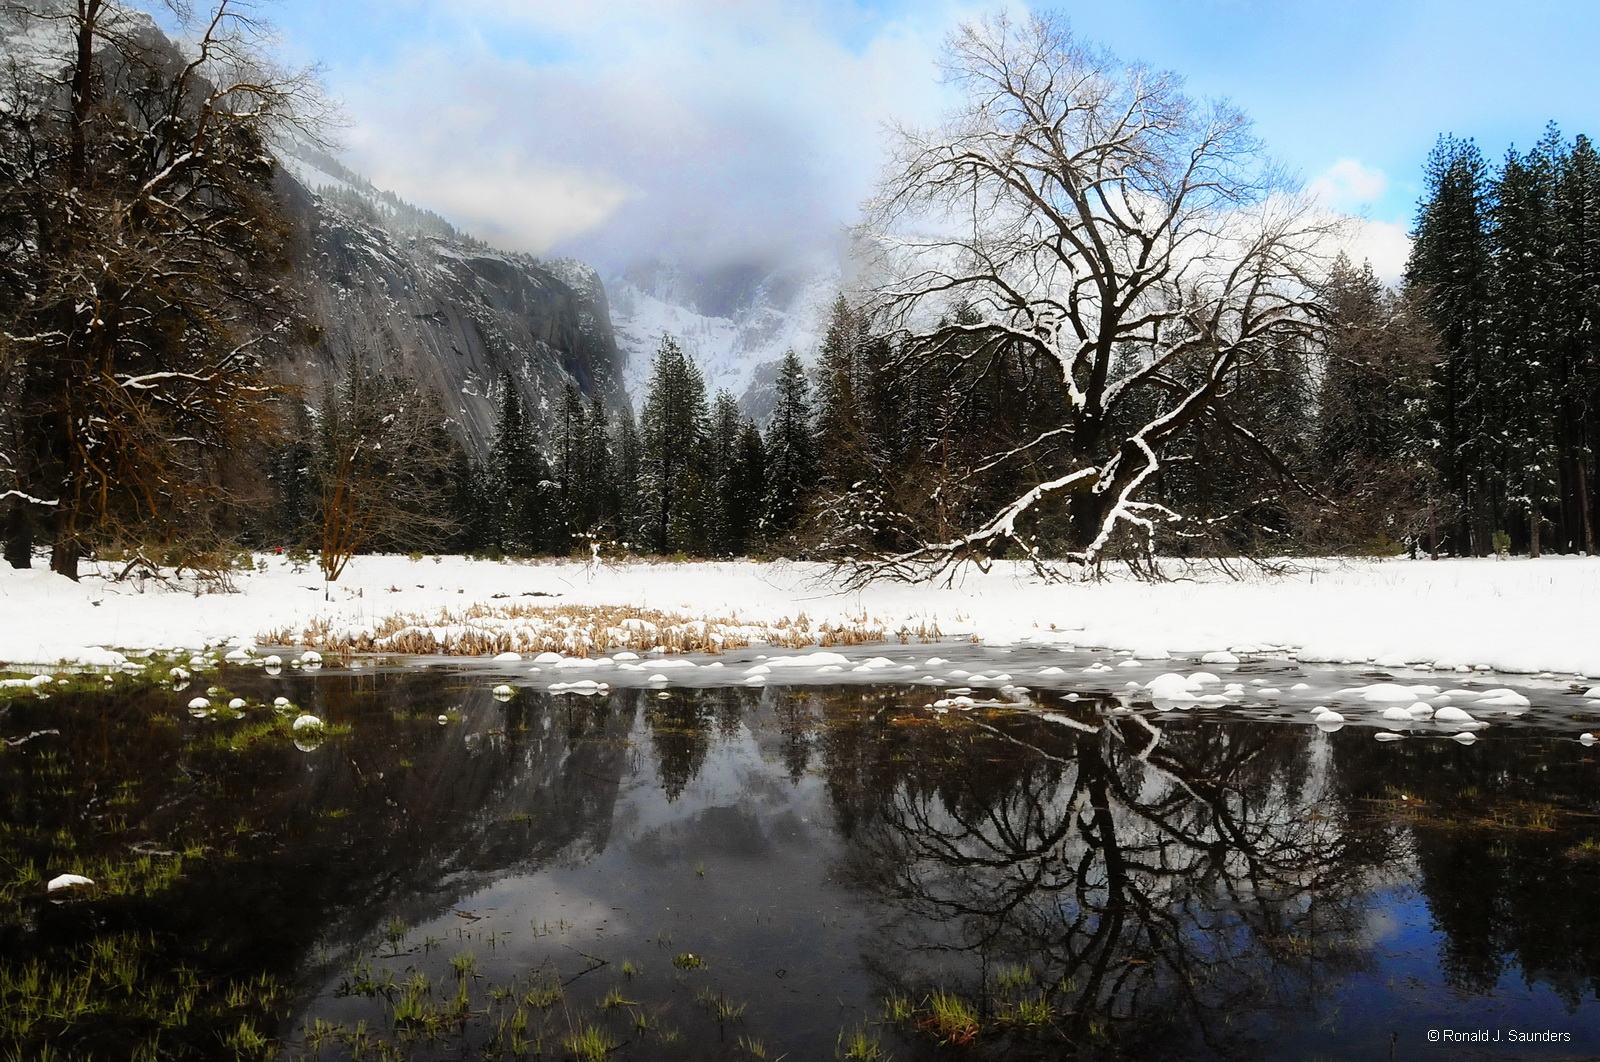 yosemite, meadows, pond, winter, reflection, color, photo